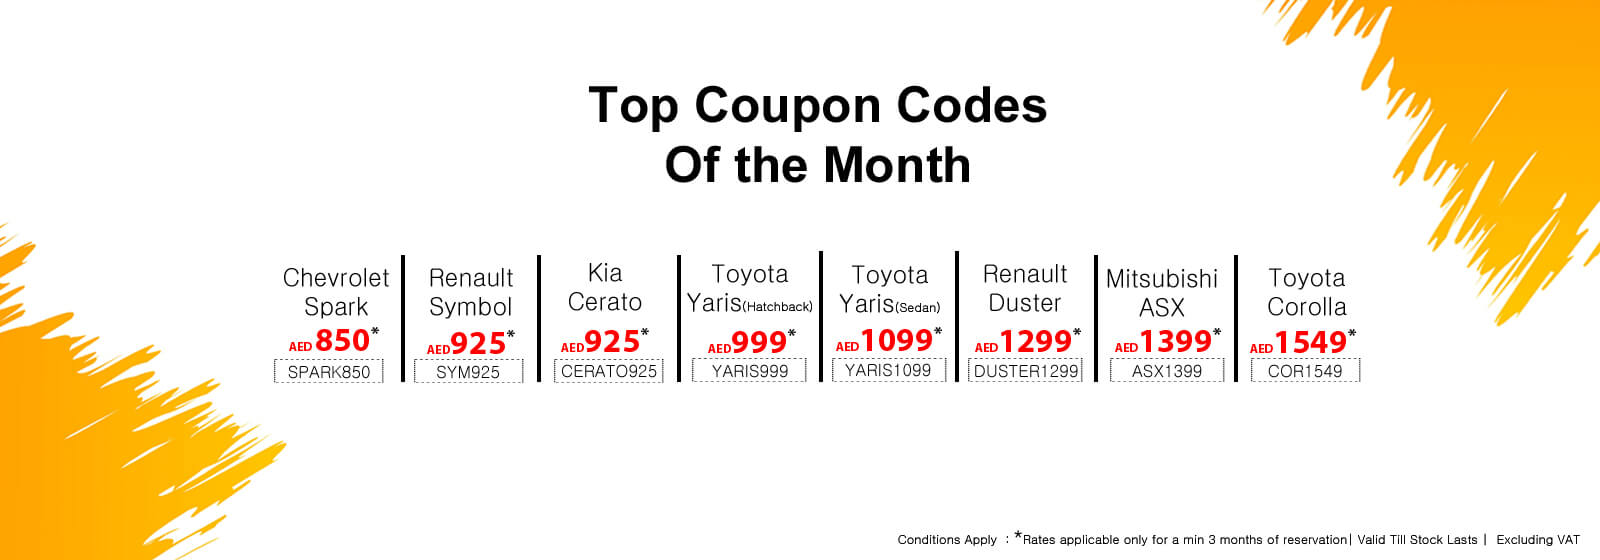 Top Coupon Codes  Of the Month